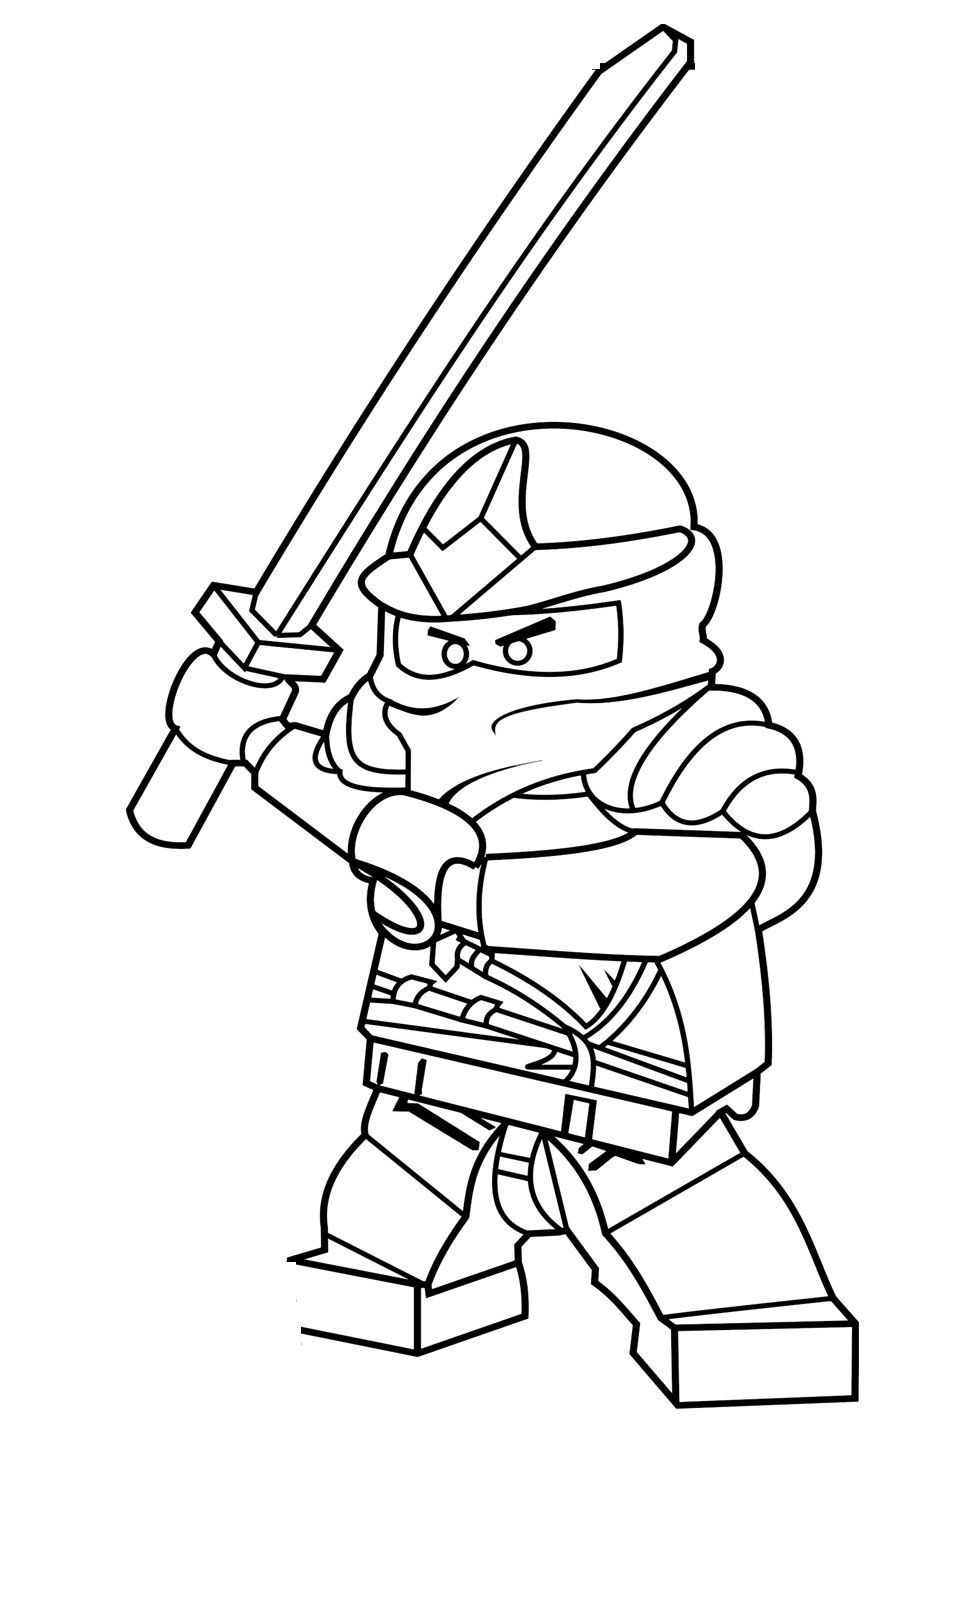 Best ideas about Ninjago Coloring Pages For Kids . Save or Pin Free Printable Ninjago Coloring Pages For Kids Now.